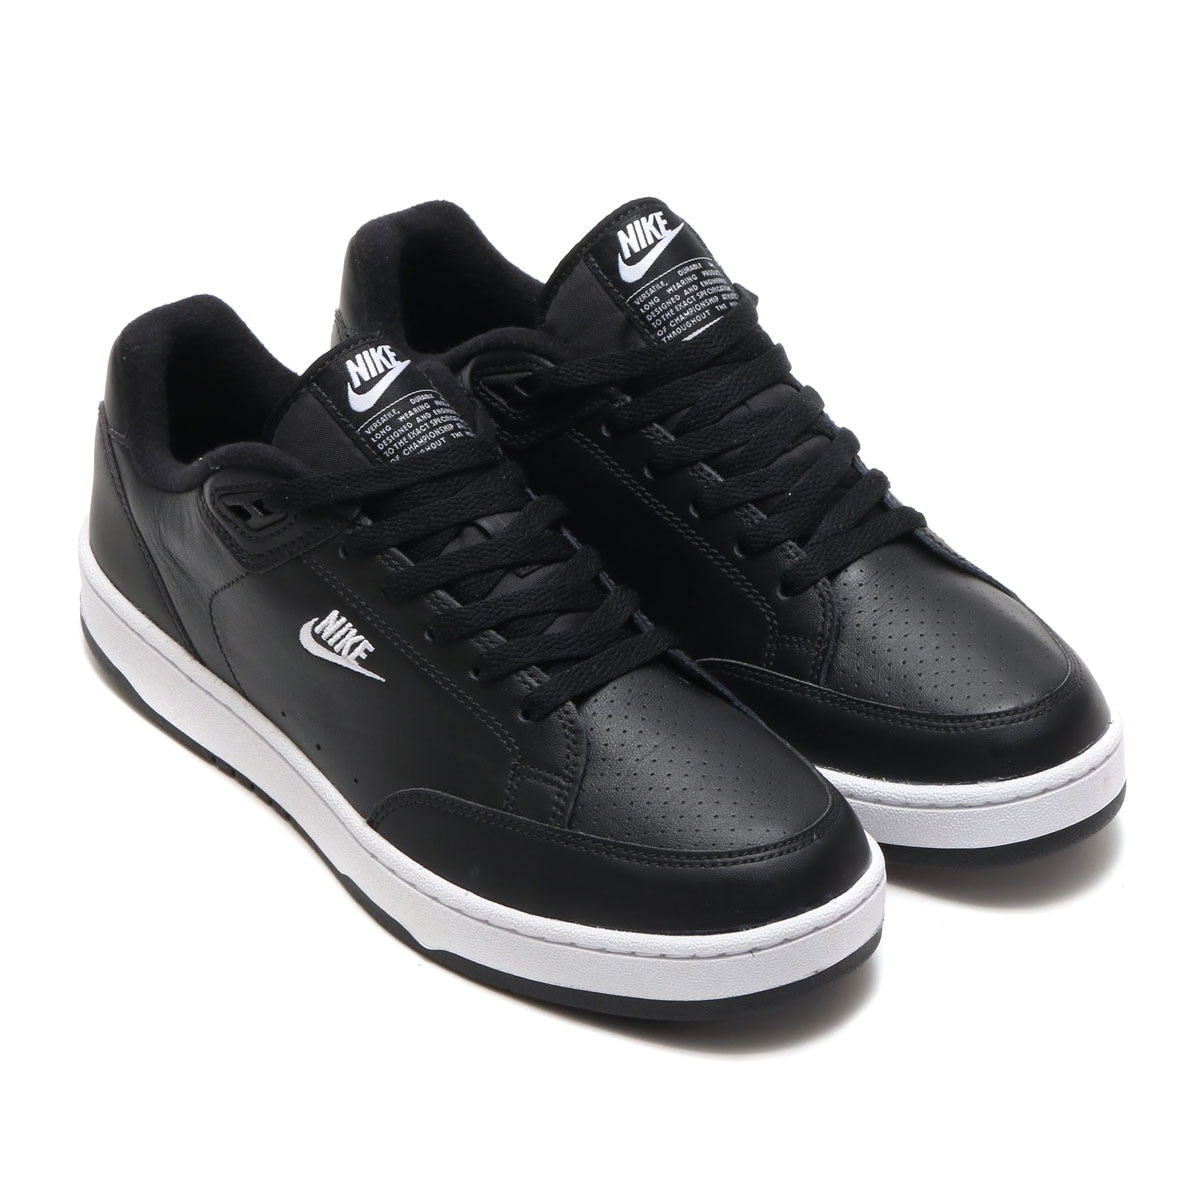 new arrival 49bf1 b6349 The moment when the Nike ground stands II men shoes revivified the tennis  shoes which won a favorable reception in 1991 as lifestyle sneakers.